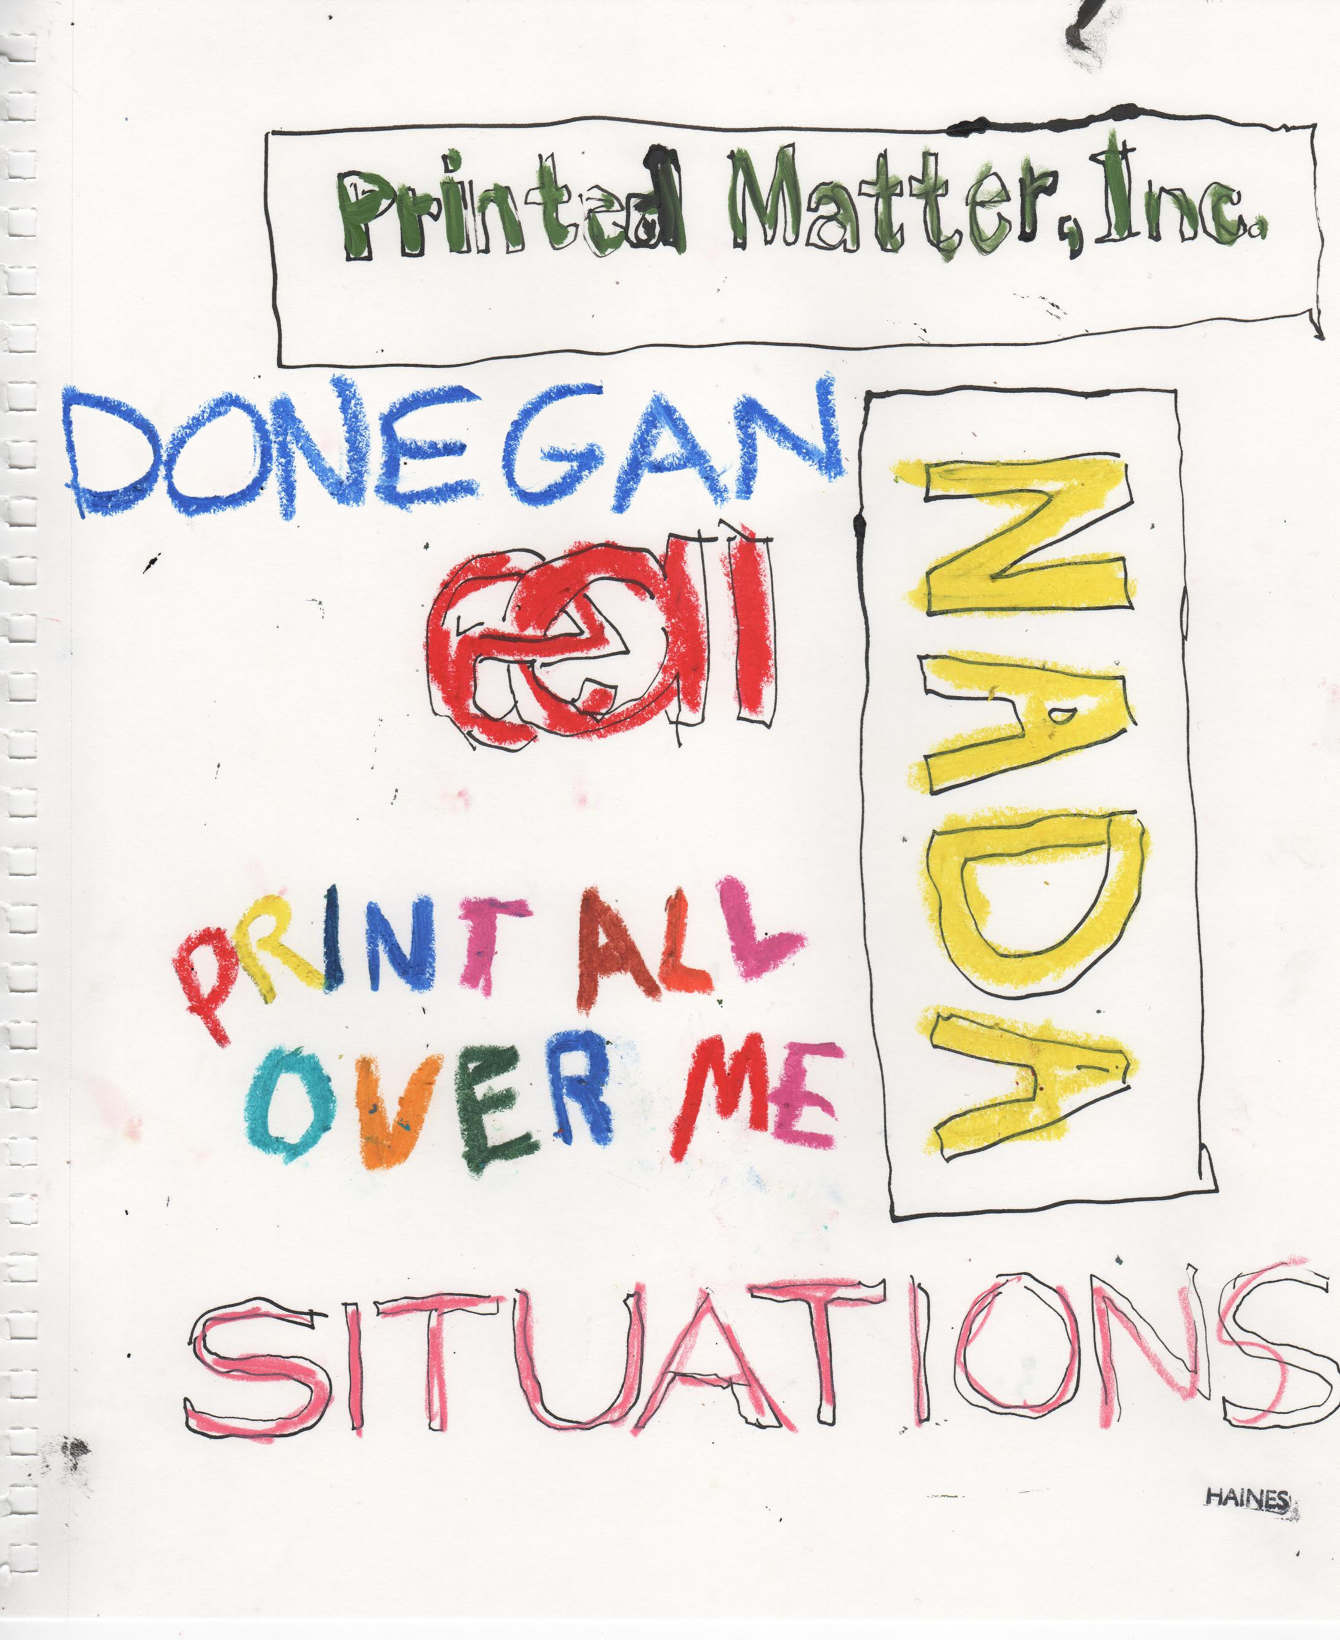 "SITUATIONS presents:   Cheryl Donegan Zine Launch with Live drawing by Richard Haines   Thursday, November 19, 6-8 PM at Printed Matter  SITUATIONS and Printed Matter are pleased to present a special zine launch for artist Cheryl Donegan with live drawing by illustrator Richard Haines at Printed Matter on Thursday, November 19, 2015, from 6:00–8:00 PM.  The new zine features Donegan's fashion-forward collection, Broken Gingham, originally presented at NADA New York in May 2015 in Contemporary Fashion, a hybrid fashion show/performance, with live drawing by fashion illustrator Richard Haines. The collaborative project was curated by artist Sam Gordon. For the evening at Printed Matter, raw footage from the performance will be screened with support from Electronic Arts Intermix.  Donegan developed and produced the Broken Gingham collection with PAOM (Print All Over Me), an online platform and creative community to create, share, sell, produce, buy, and design clothing. For the collection, she explores her concept of ""being-on-the-surface"" and the ""quotidian, fluid relationship between the tactile world and the virtual one"" through her playful engagement with fashion, textiles, texture, pattern, and layering. Donegan scanned gingham fabrics and uploaded the images into PAOM's online templates. The gingham patterns are transformed further once they are printed and mapped onto the physical garments and worn on bodies—giving the two-dimensional texture of gingham volume and spatial dimension.  For the performance at NADA New York, Donegan combined clothing from the collection with garments from her own closet and pieces owned by the models. The presentation also featured a selection of new and recent NADA x PAOM garments by artists Sarah Braman, Bjorn Copeland, Daniel Heidkamp, and Amy Yao.  SITUATIONS is a fluid and expansive curatorial project founded in New York City in 2015 by artists Sam Gordon, Jackie Klempay, Mariah Robertson, and Jacob Robichaux."